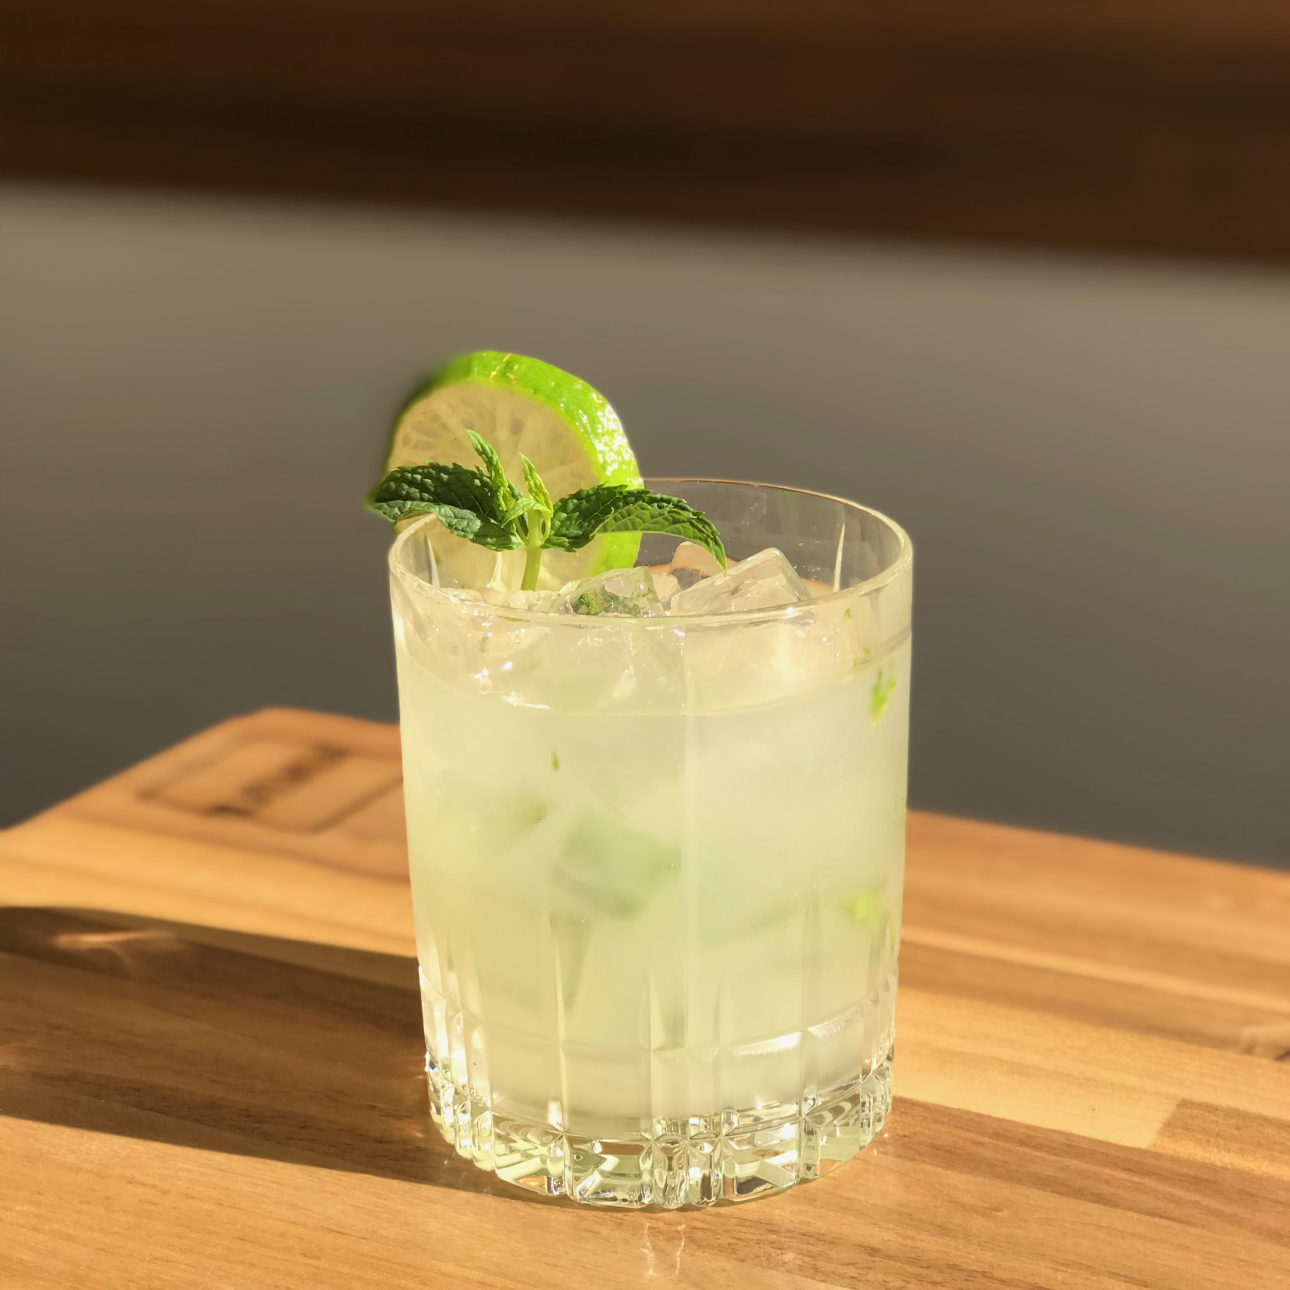 10 vodka mint limeade